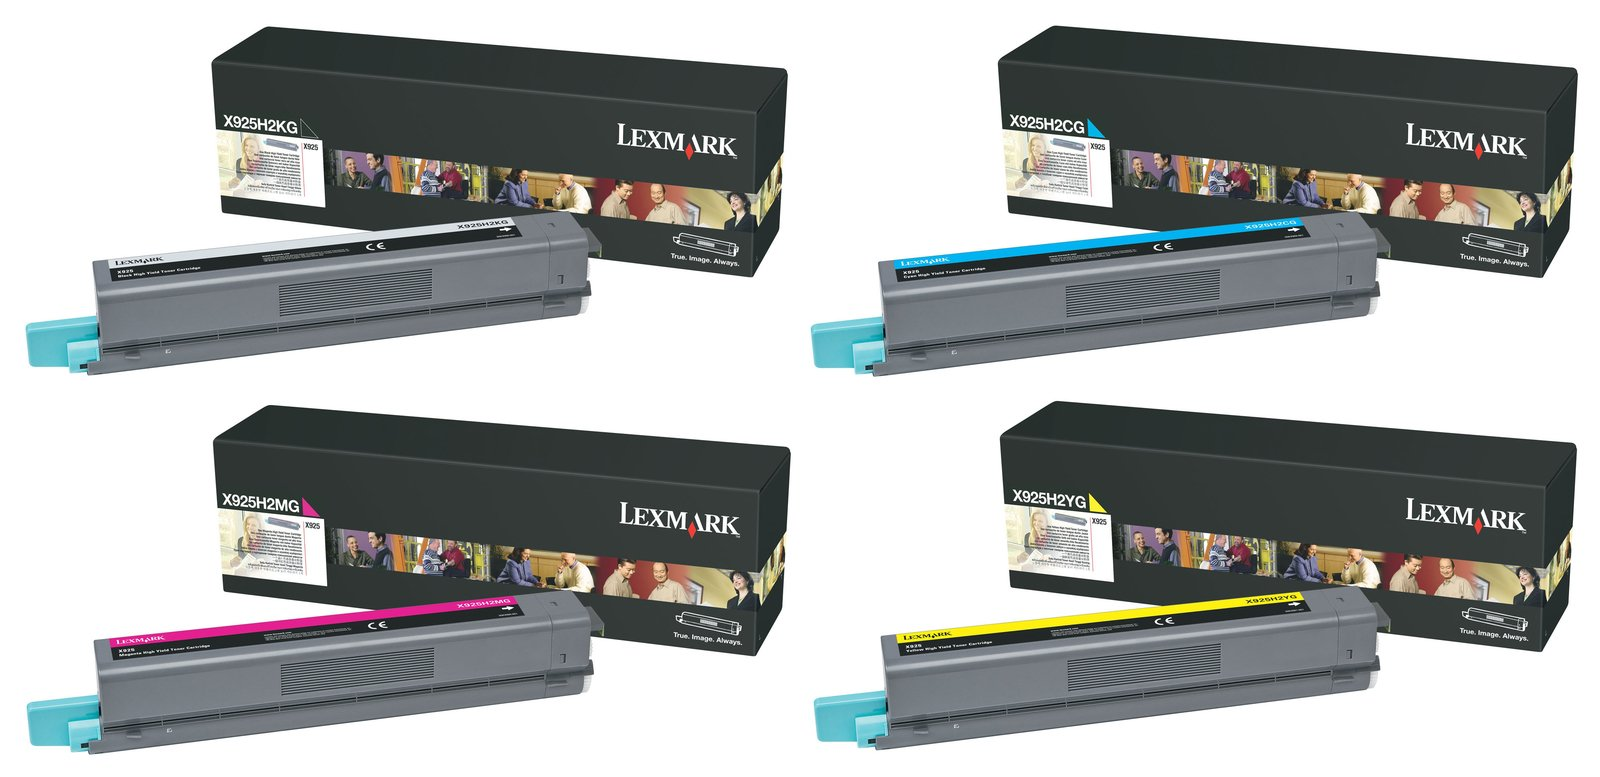 Genuine 4 Colour Lexmark X925H2 Toner Cartridge Multipack - (Lexmark X925H2KG/CG/MG/YG)